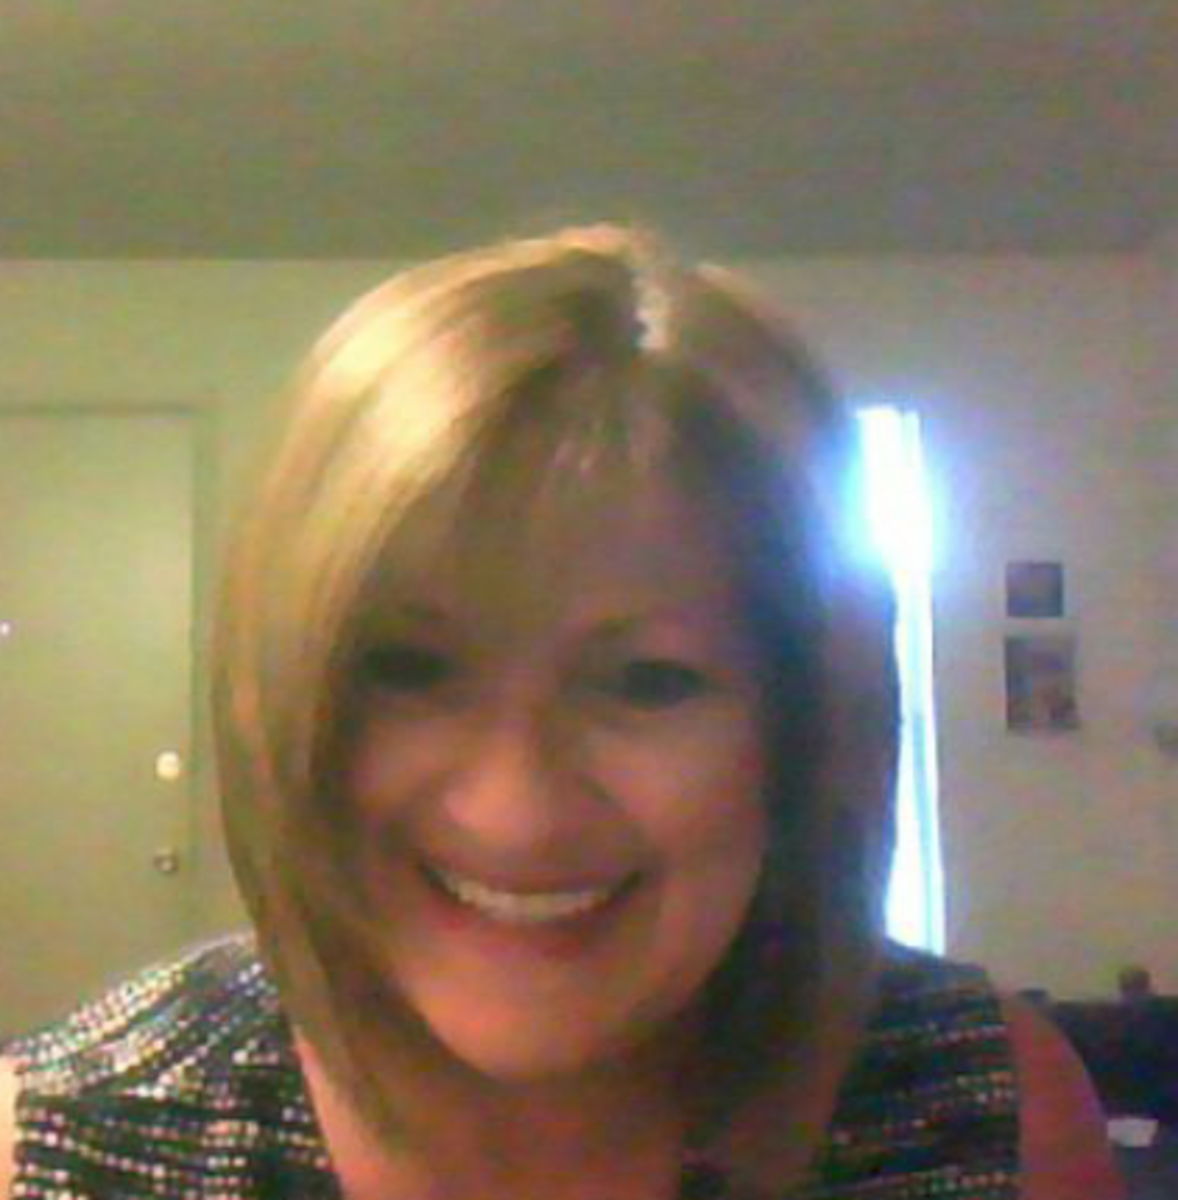 It was a good hair day! Something that always makes me happy!